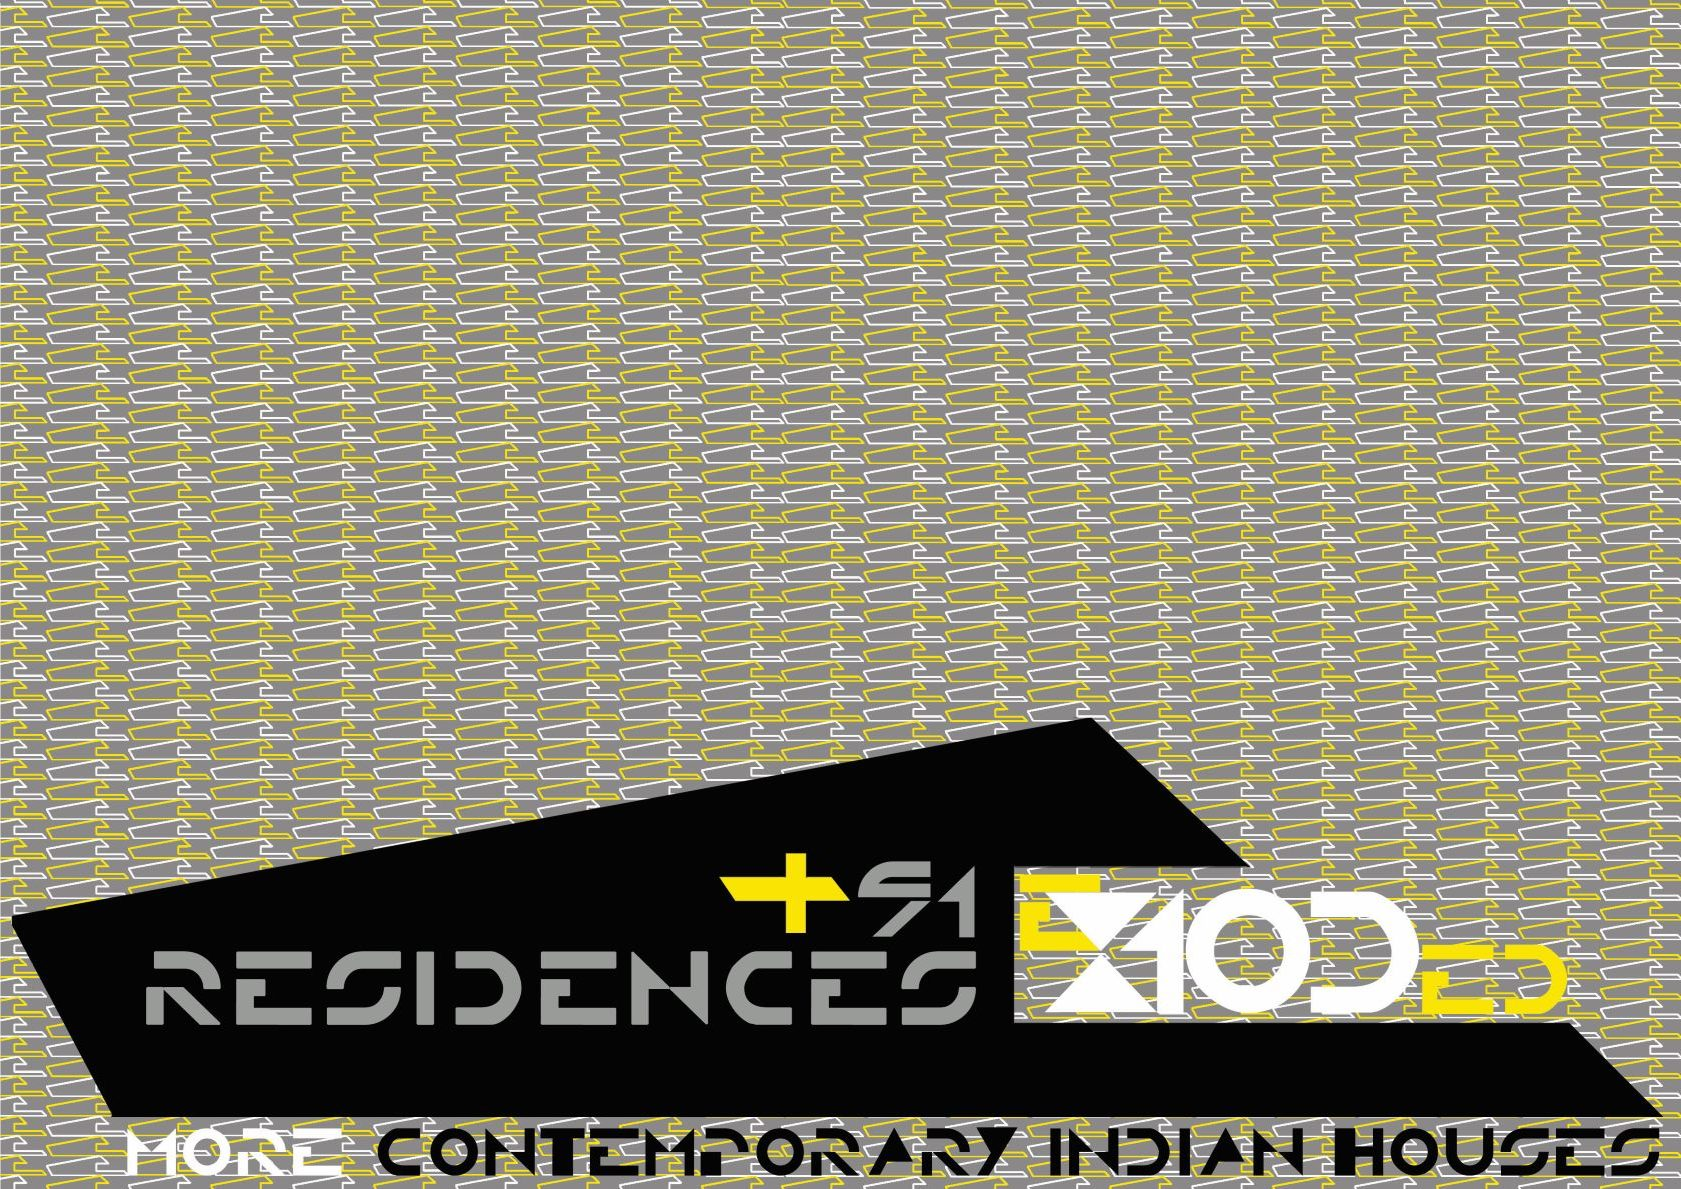 Contemporary Indian Houses - Incite